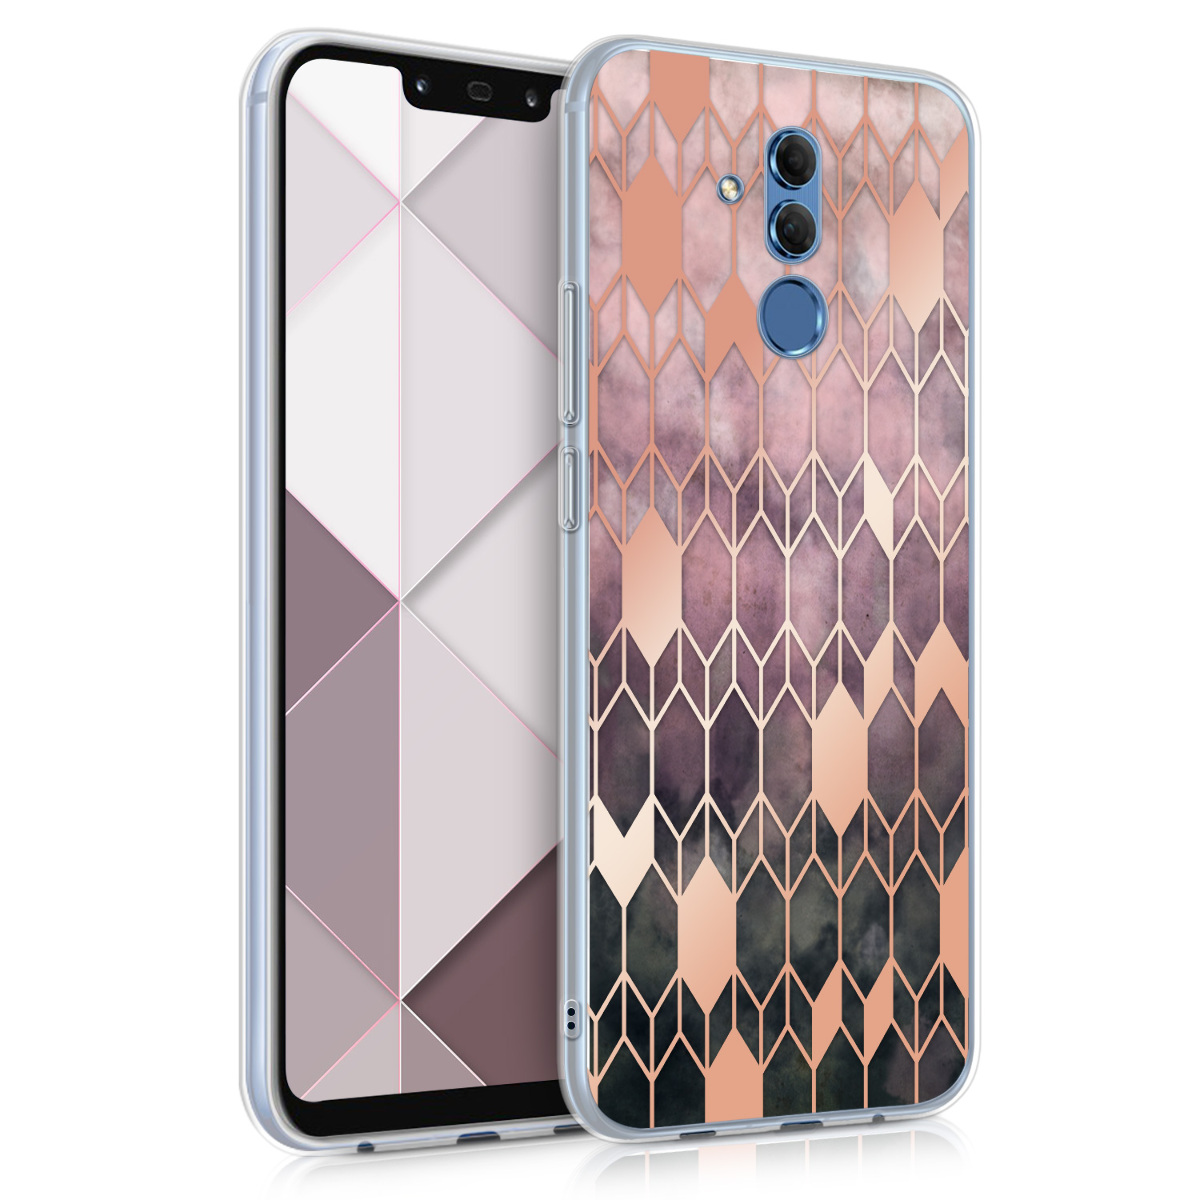 KW Θήκη Σιλικόνης Huawei Mate 20 Lite - Dark Pink / Rose Gold (46201.03)